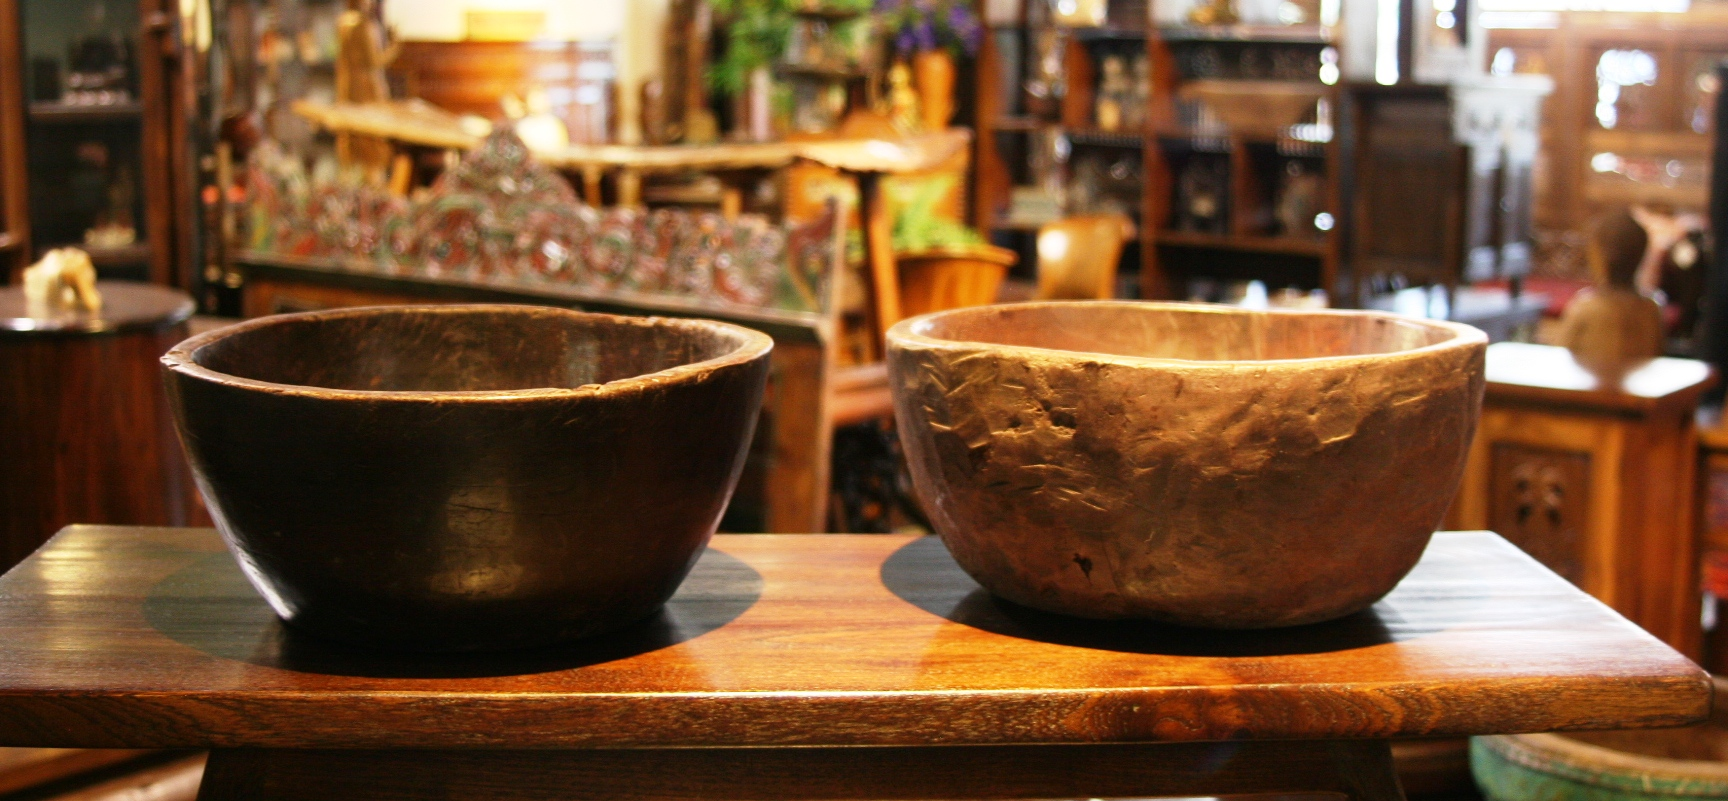 Old Rustic Bowl 3